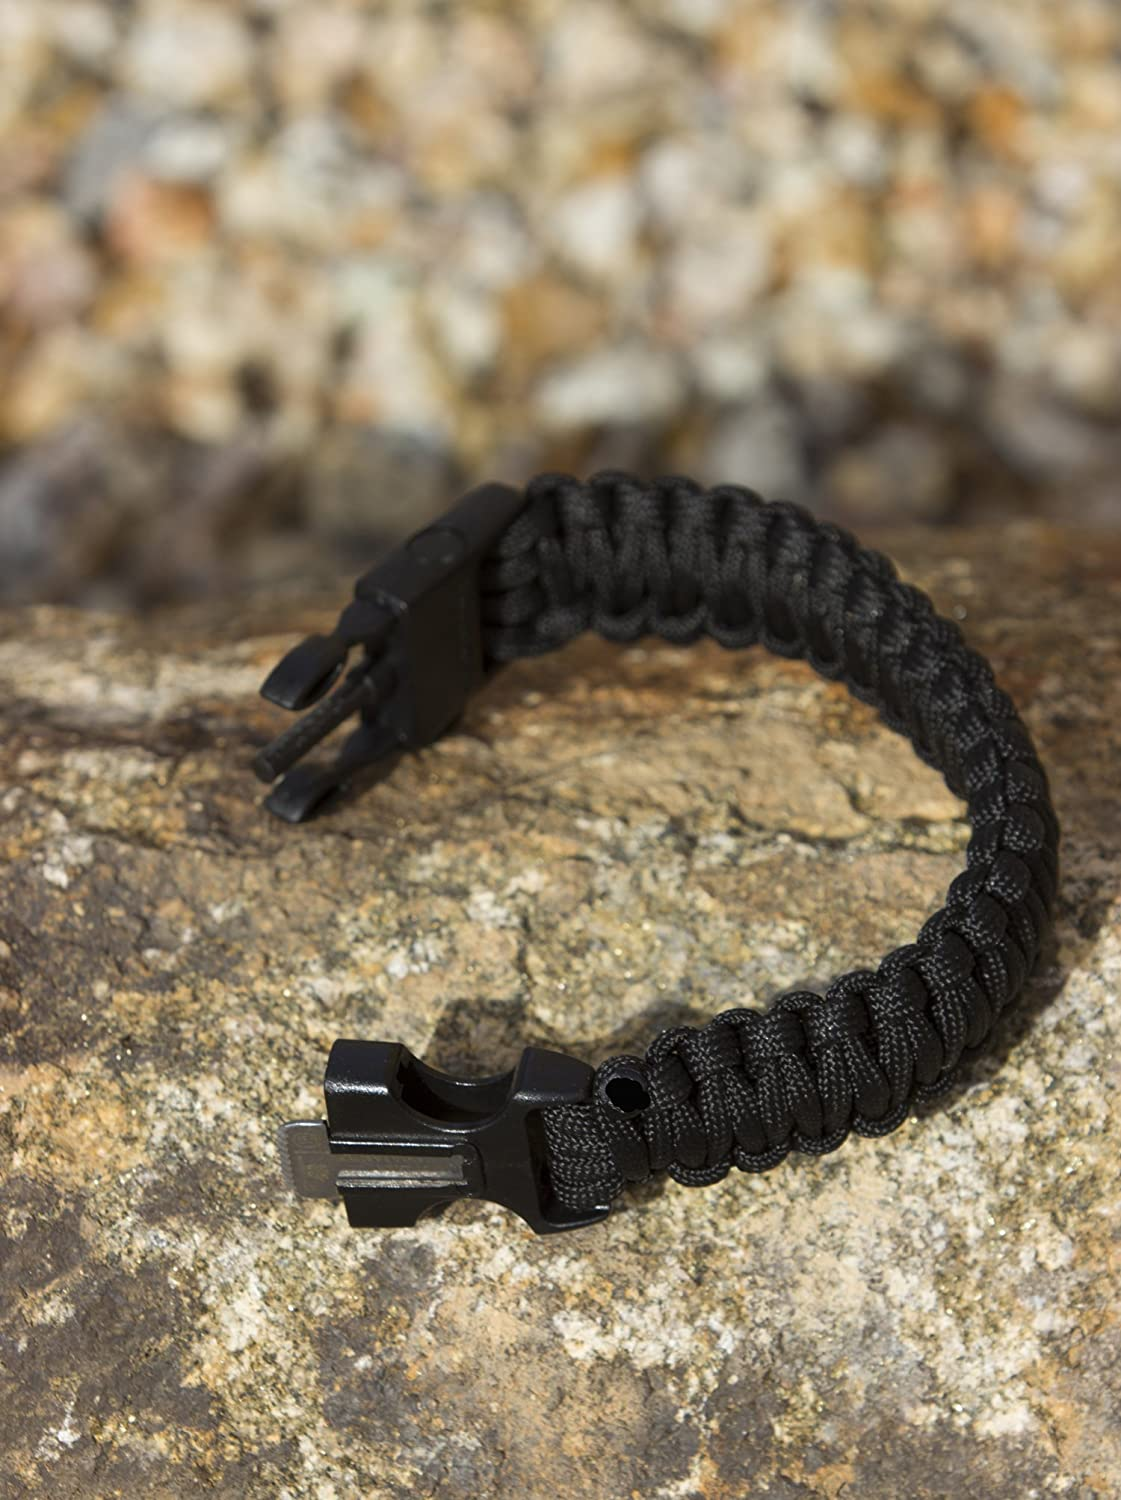 Includes Built-in Emergency Whistle /& Firestarter /& 100/% Guaranteed Best Black 550 Paracord Bracelet for Survival /& Camping Everyday We Carry